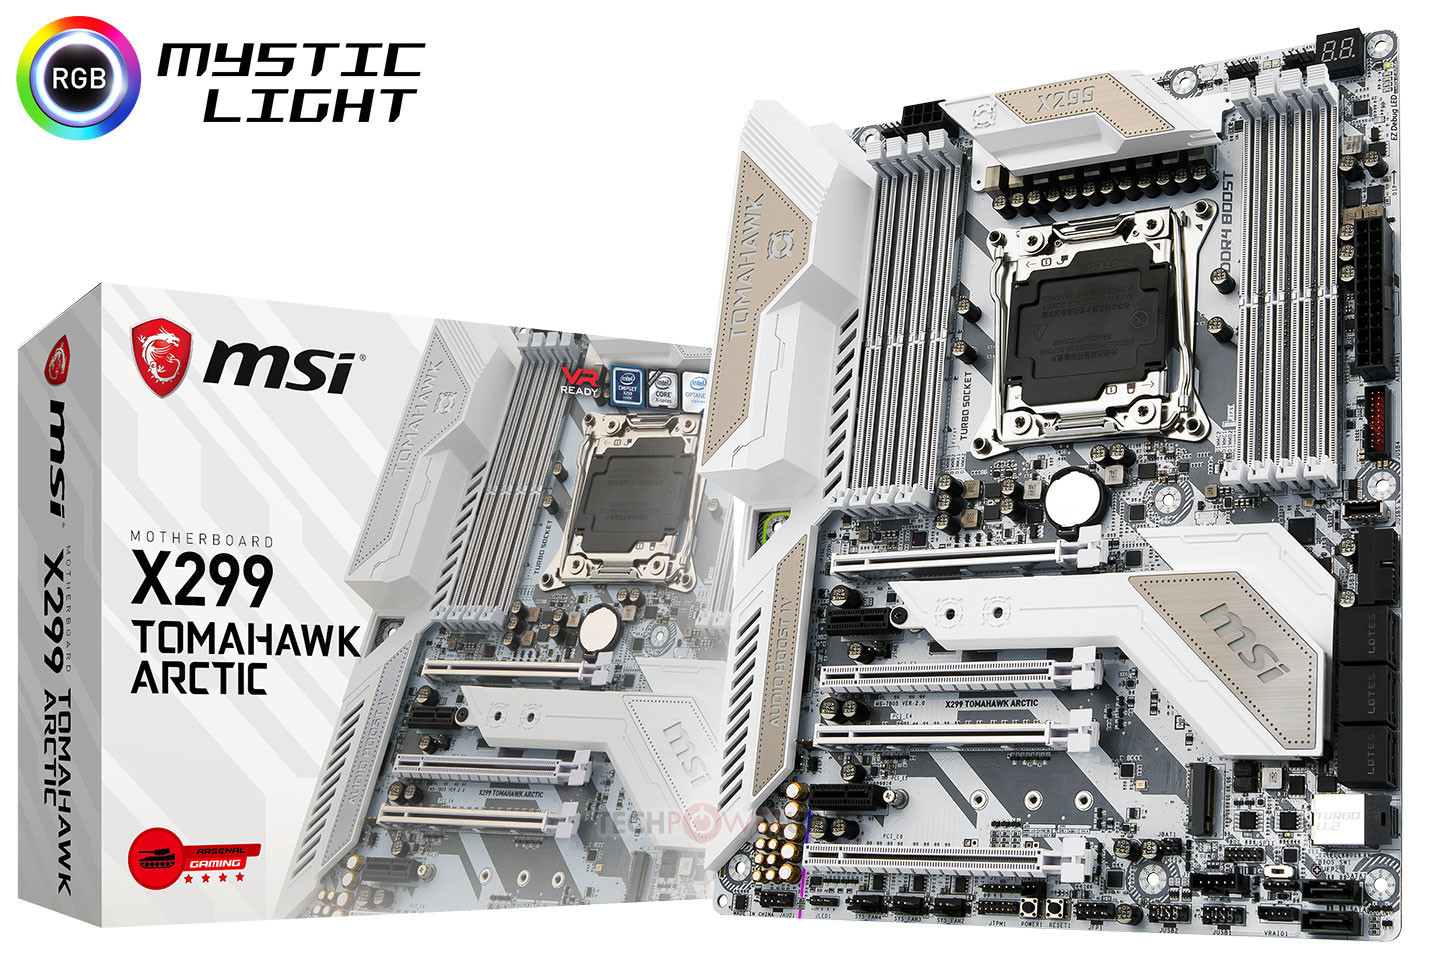 MSI showcase their X299 Tomahawk Arctic motherboard